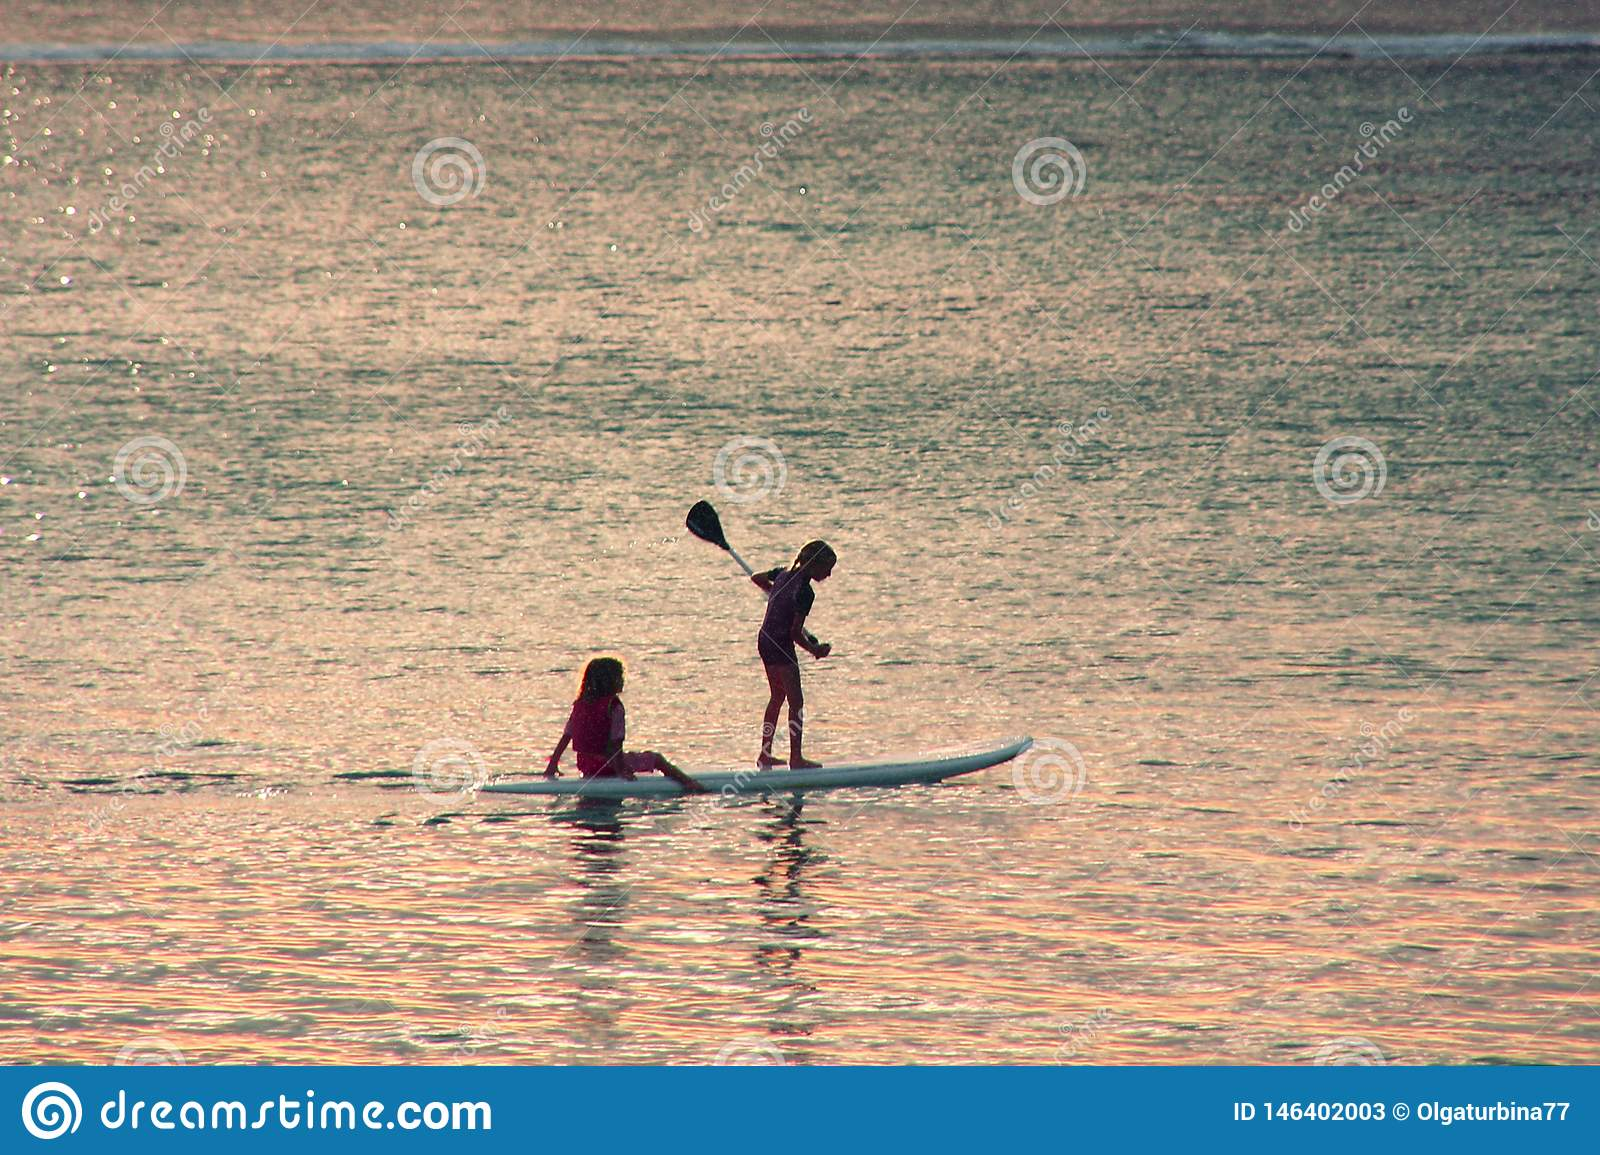 Sunset scene on background. Two little girls silhouettes are padddling